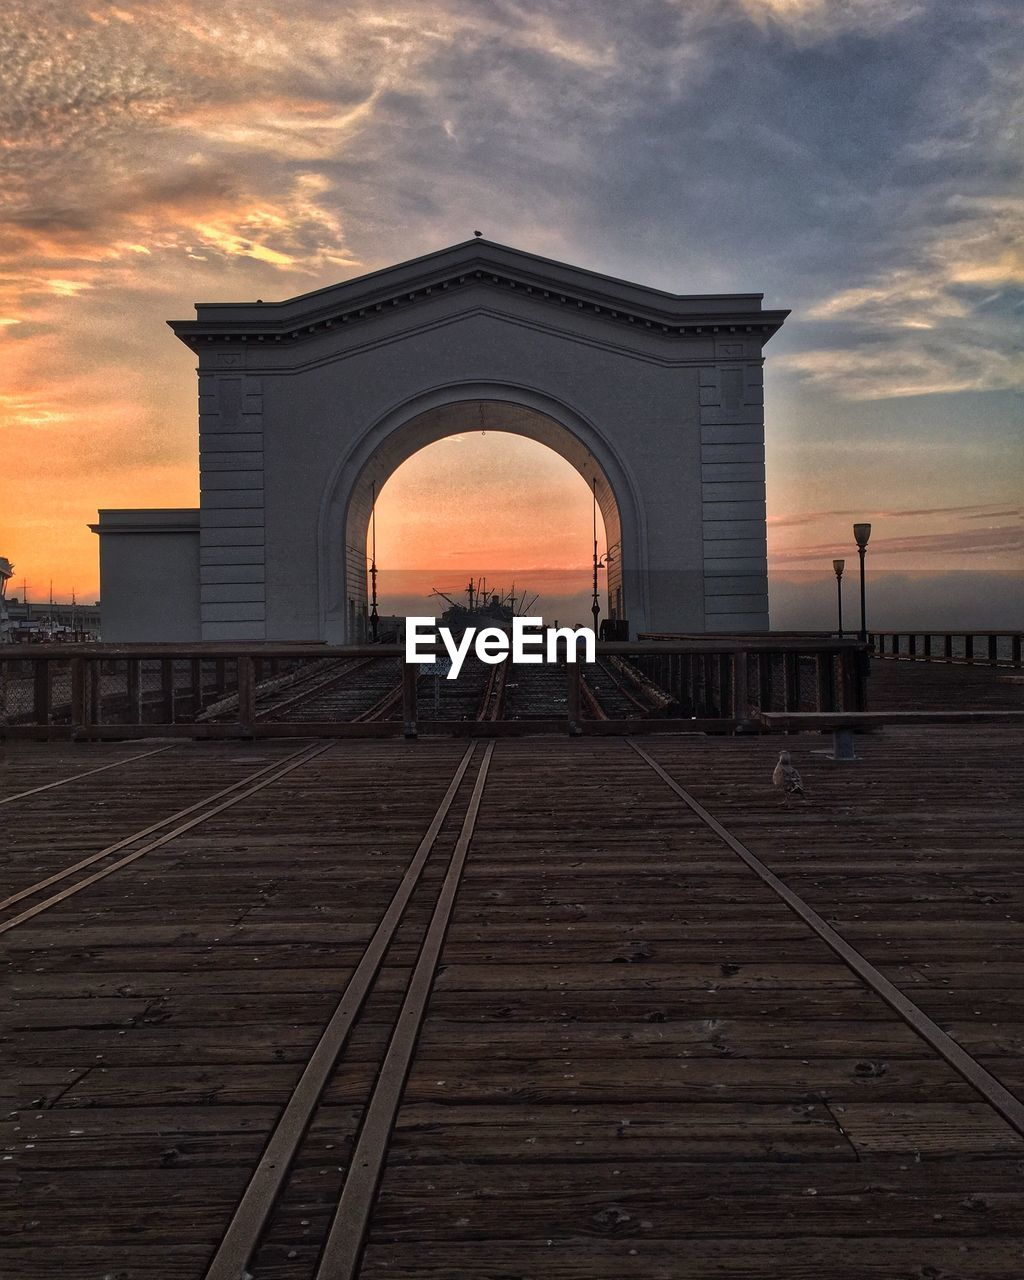 sunset, sky, cloud - sky, built structure, architecture, arch, railroad track, transportation, rail transportation, no people, outdoors, building exterior, day